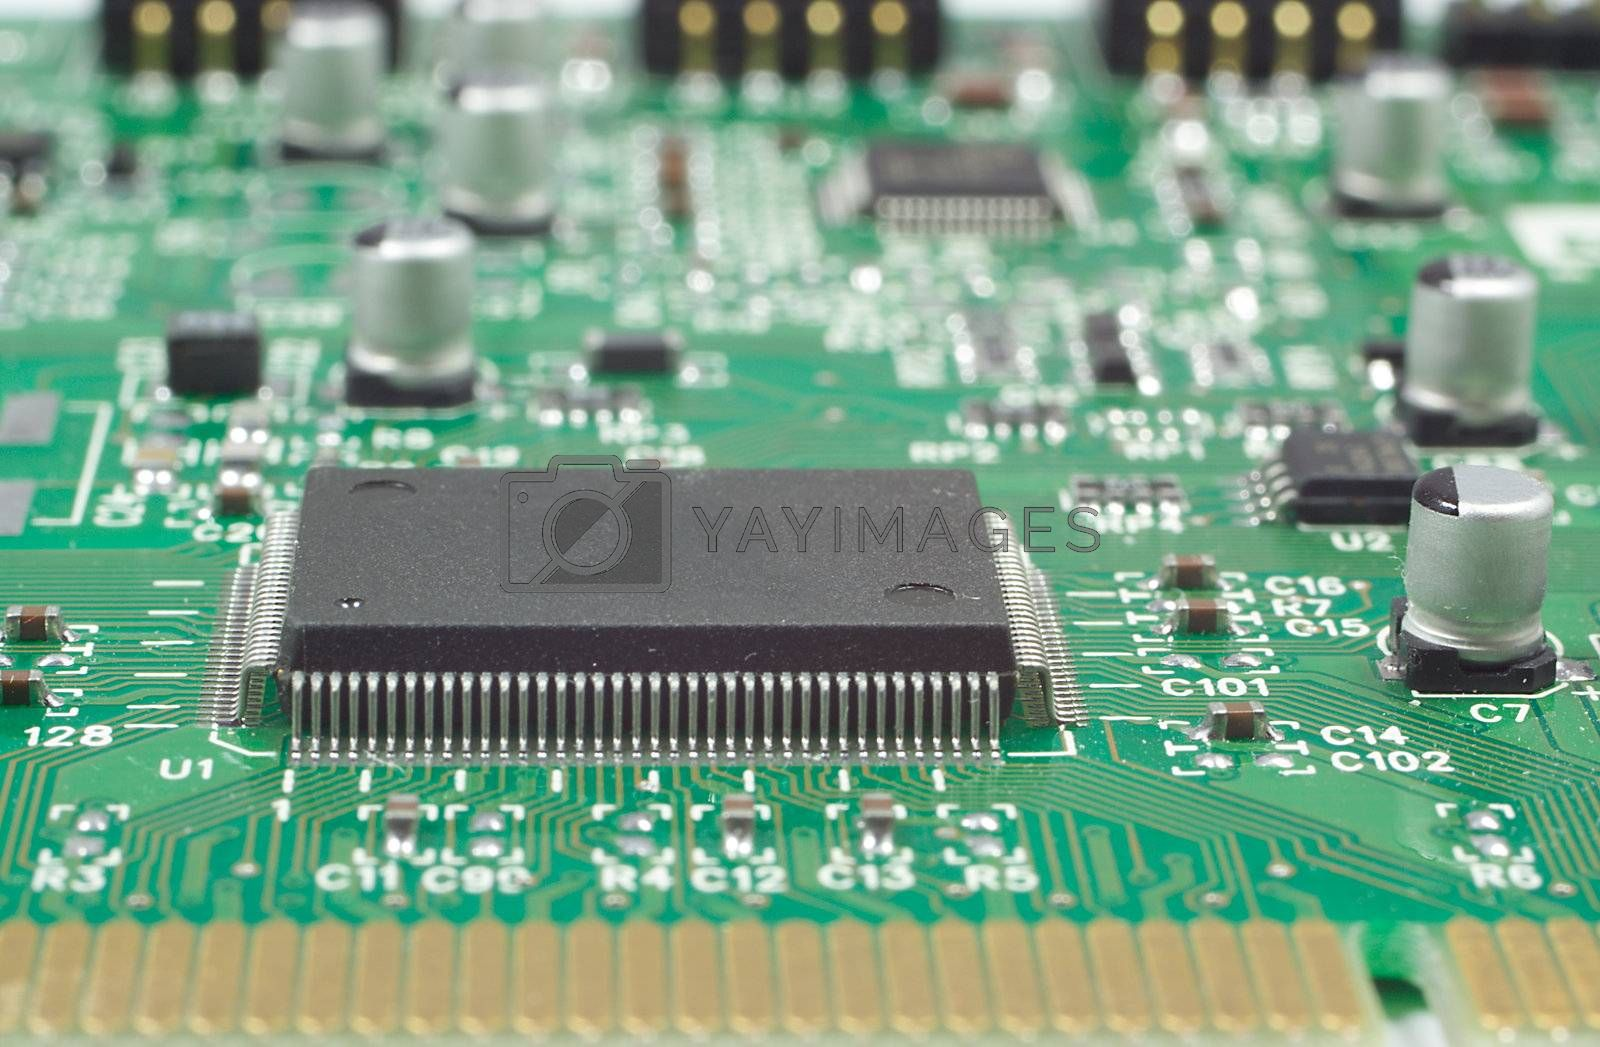 close-up processor on circuit board, shallow dof